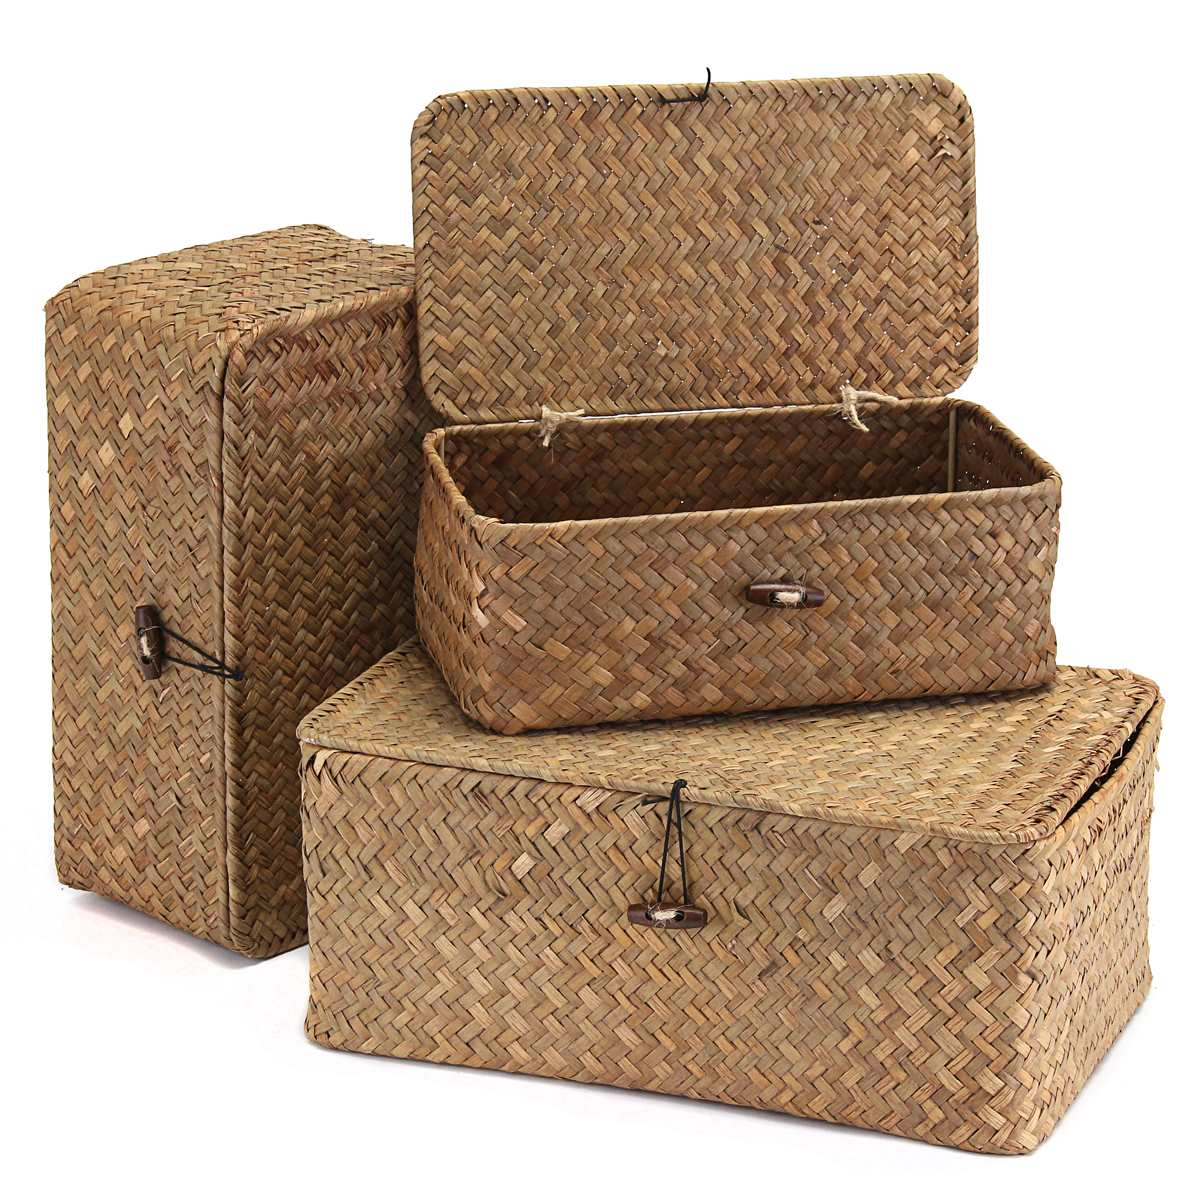 Wicker Basket Vintage Cosmetic Makeup Jewelry Storage Box Storage Bag Zakka  Container Clothes Children Toys Travel